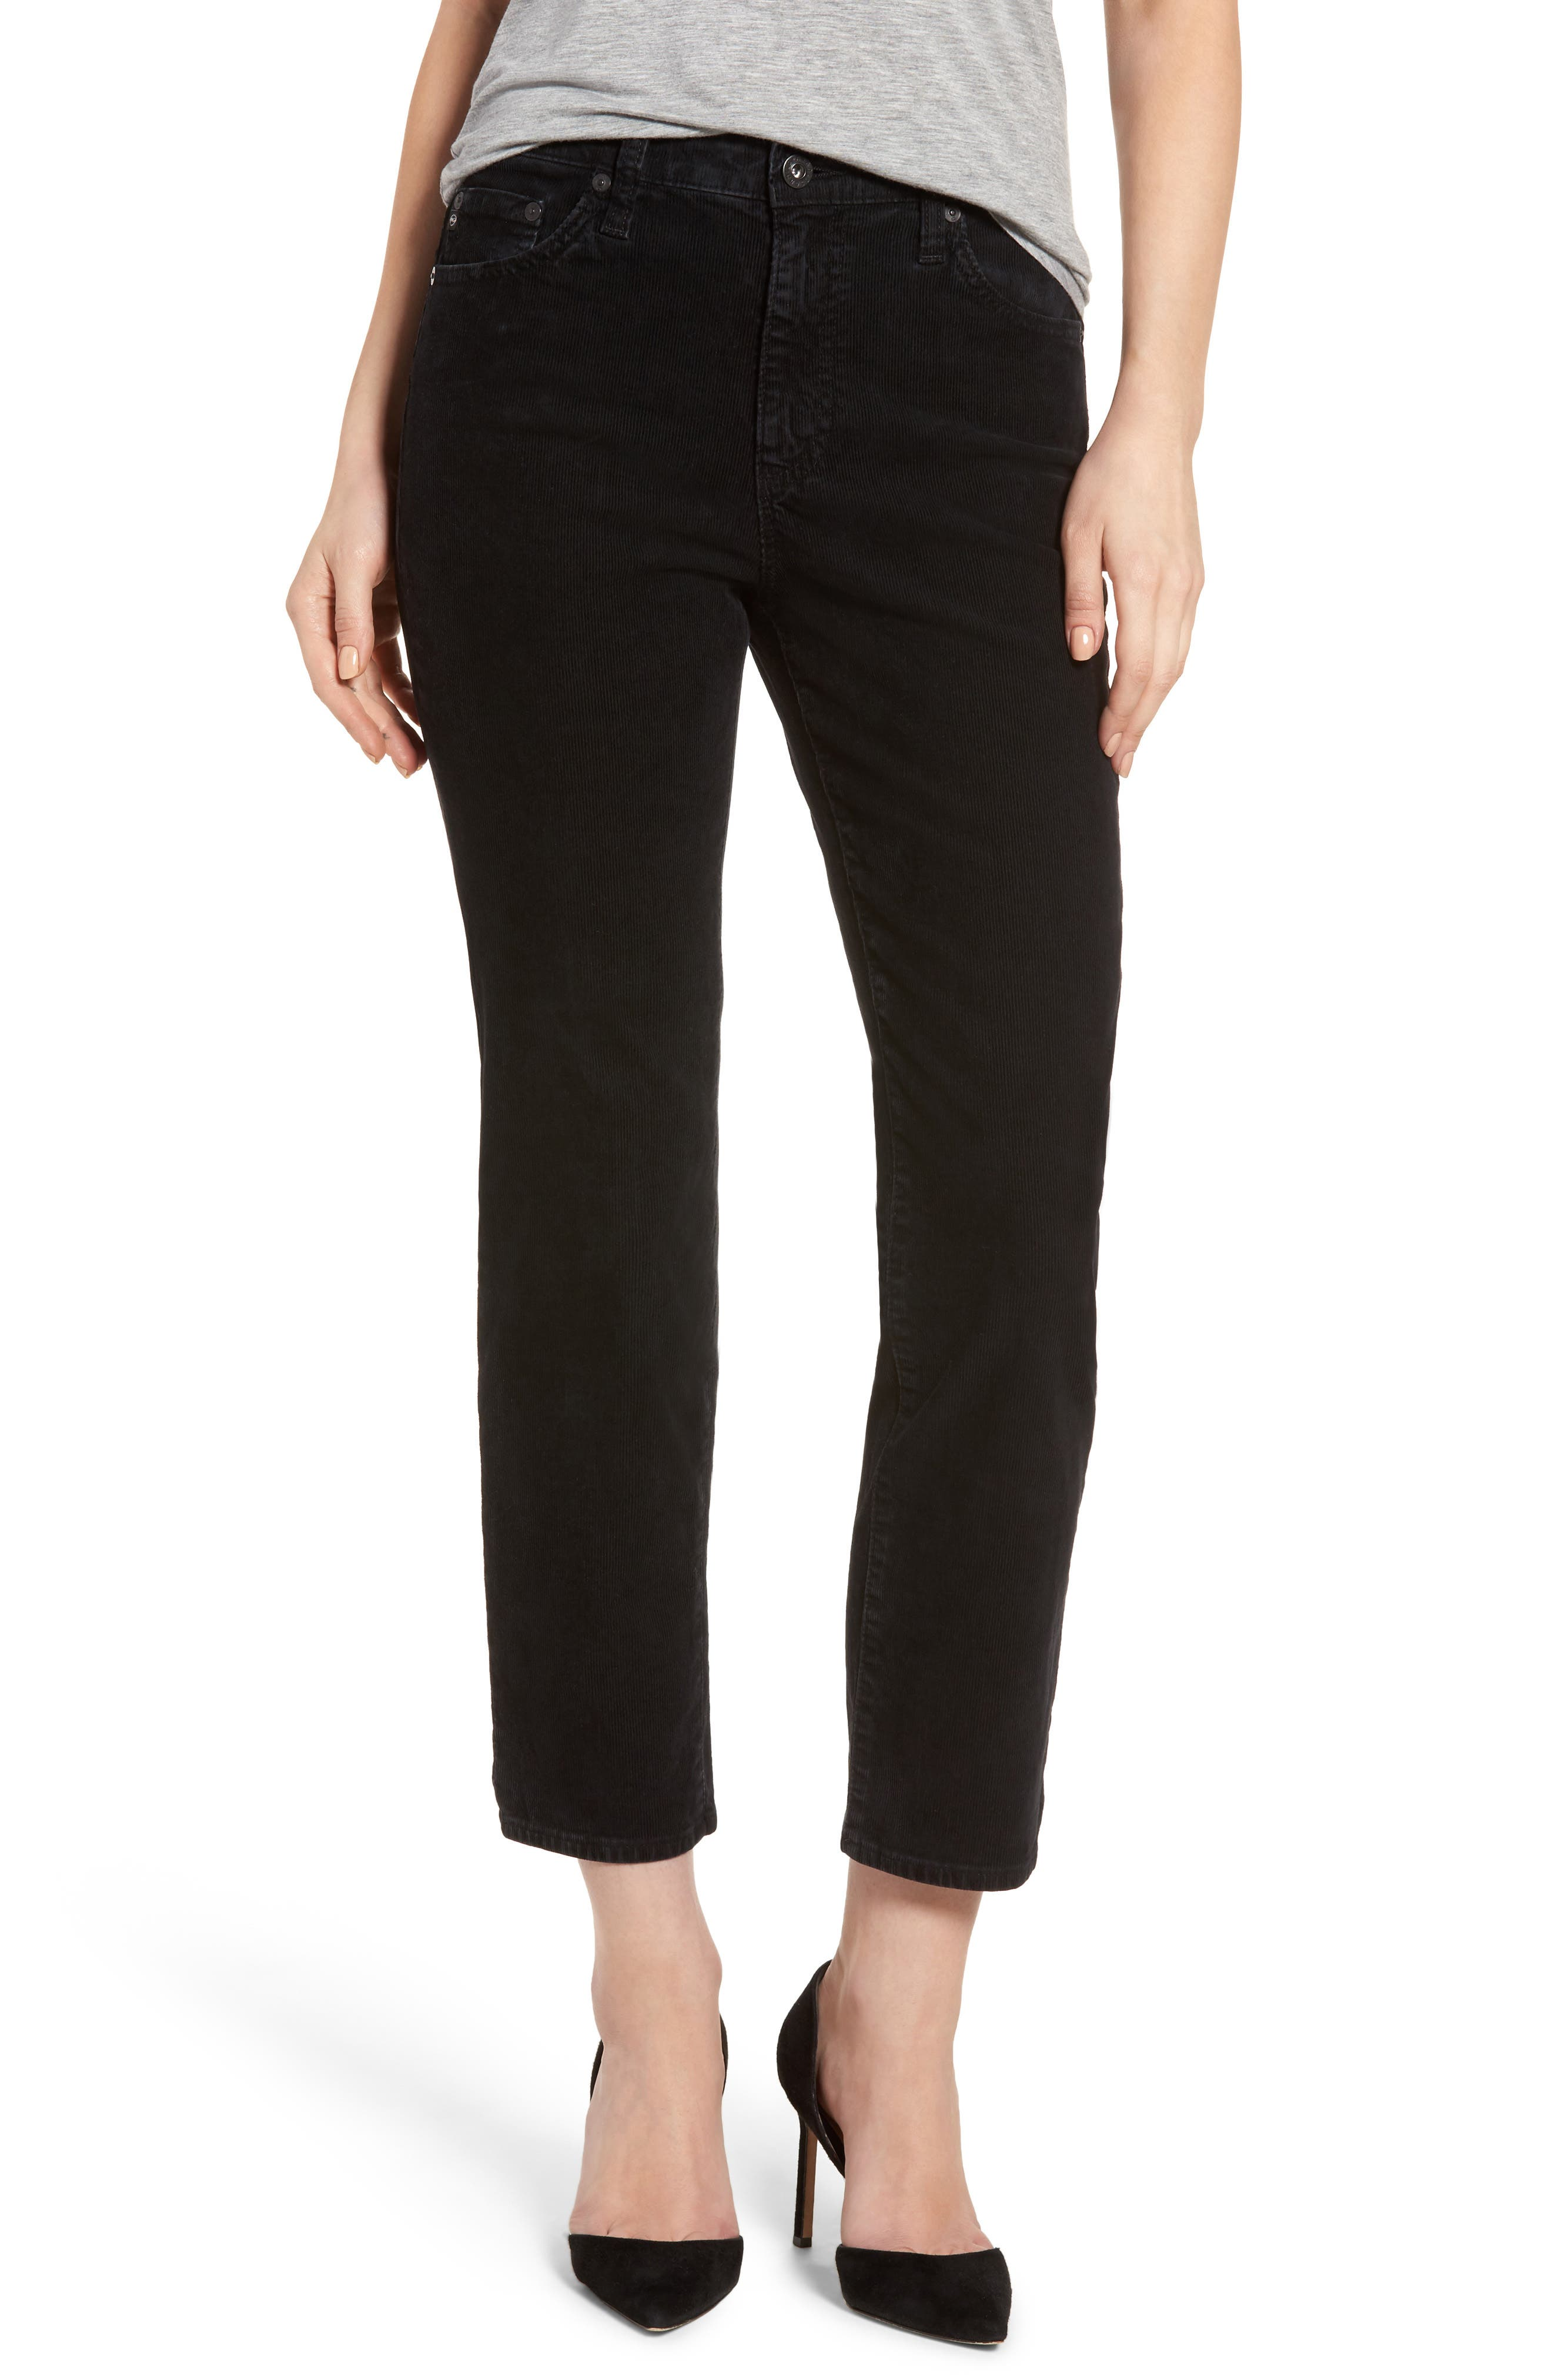 Isabelle High Waist Corduroy Jeans,                         Main,                         color, Immersed Black